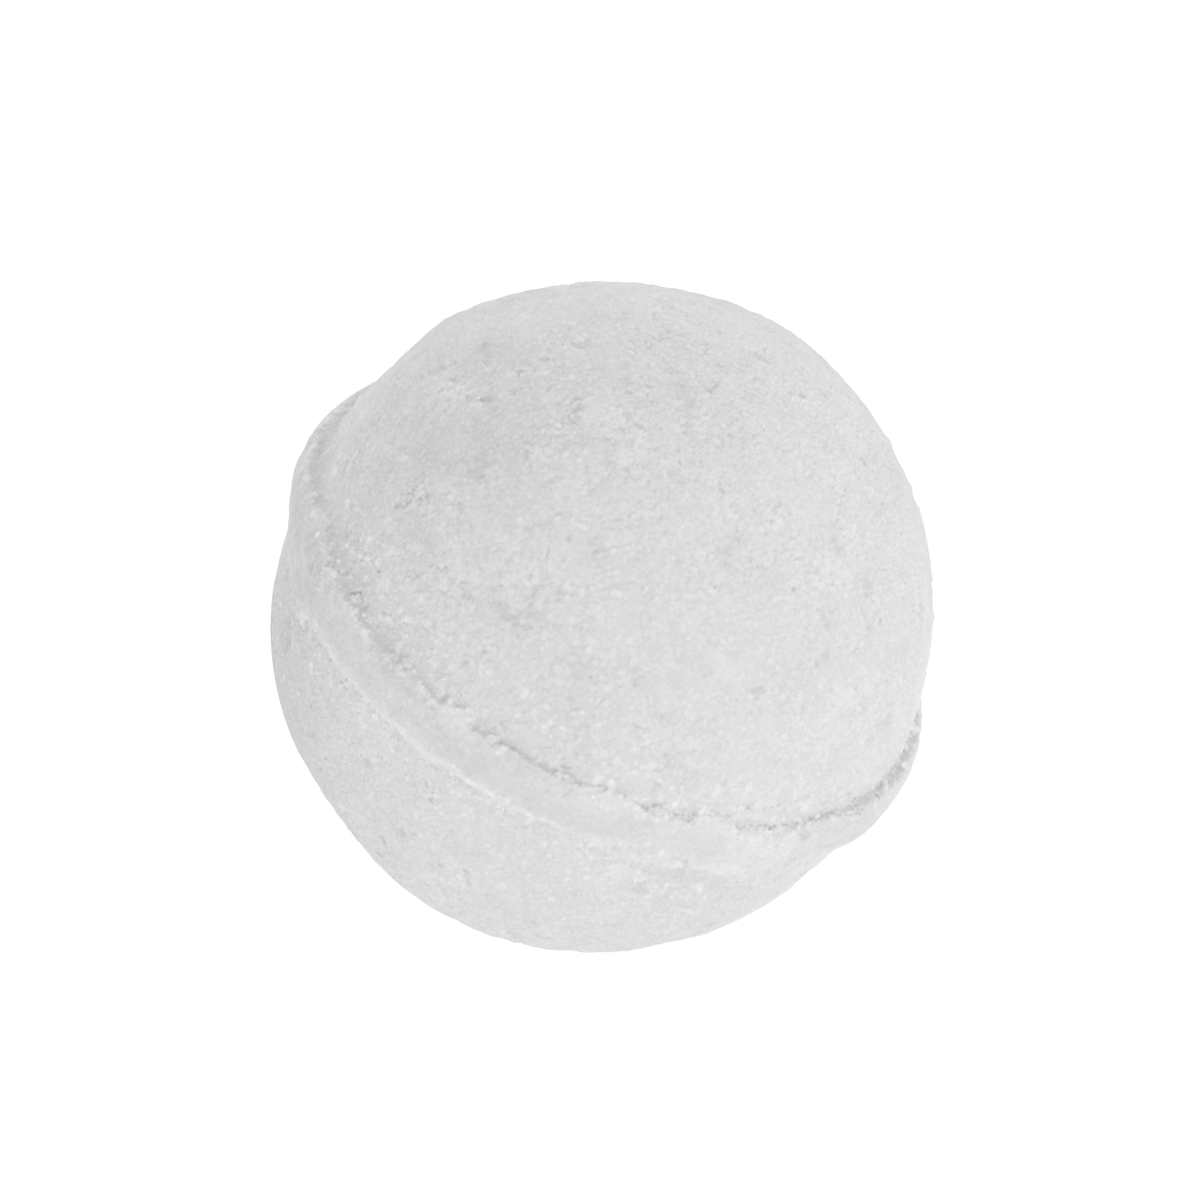 Scented Bath Bombs Coconut Milk